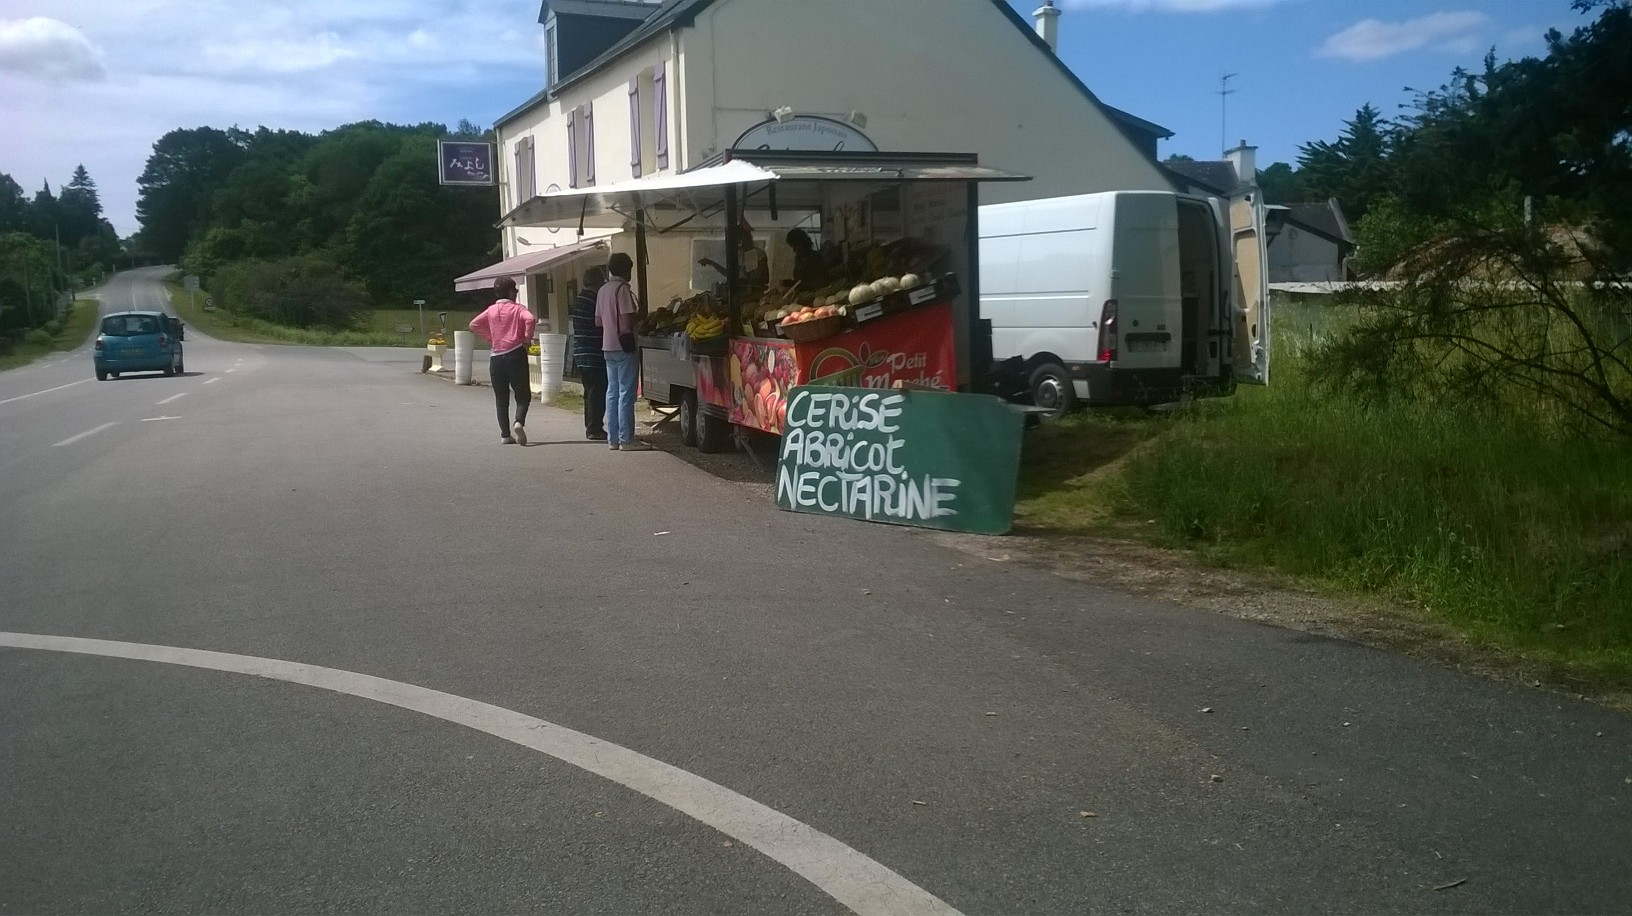 crach fruit stand on D781 selling on season cherries abricot nectarines jun17